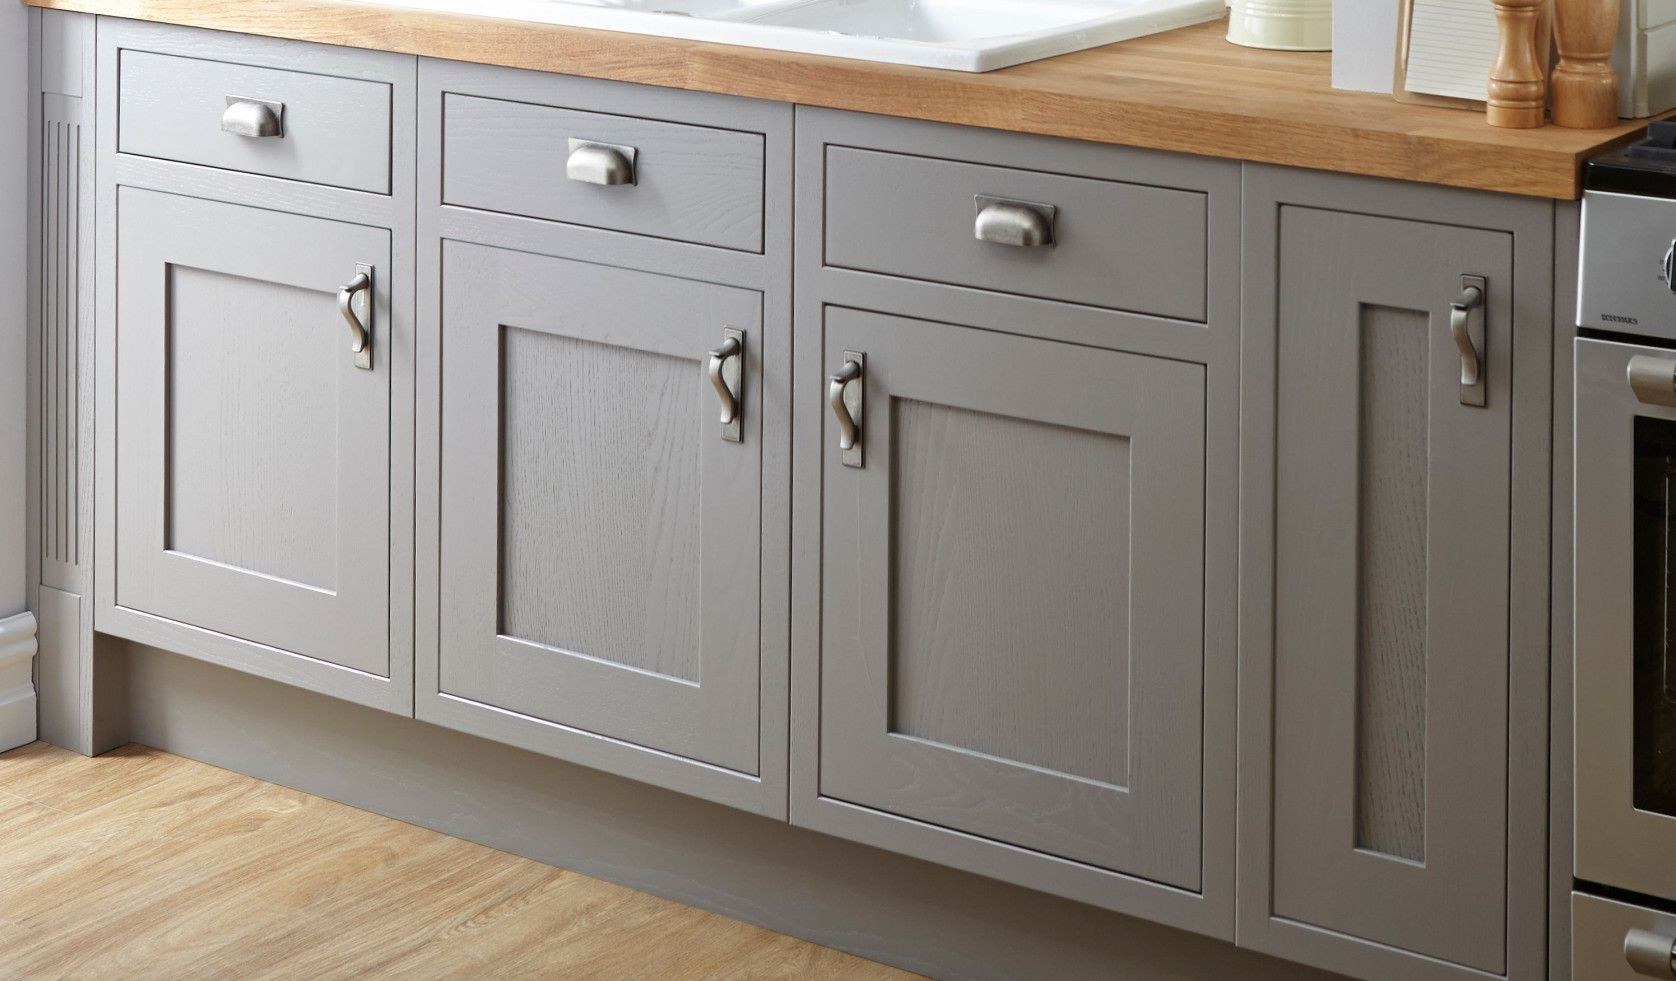 50 Where To Buy Replacement Cabinet Doors Apartment Kitchen